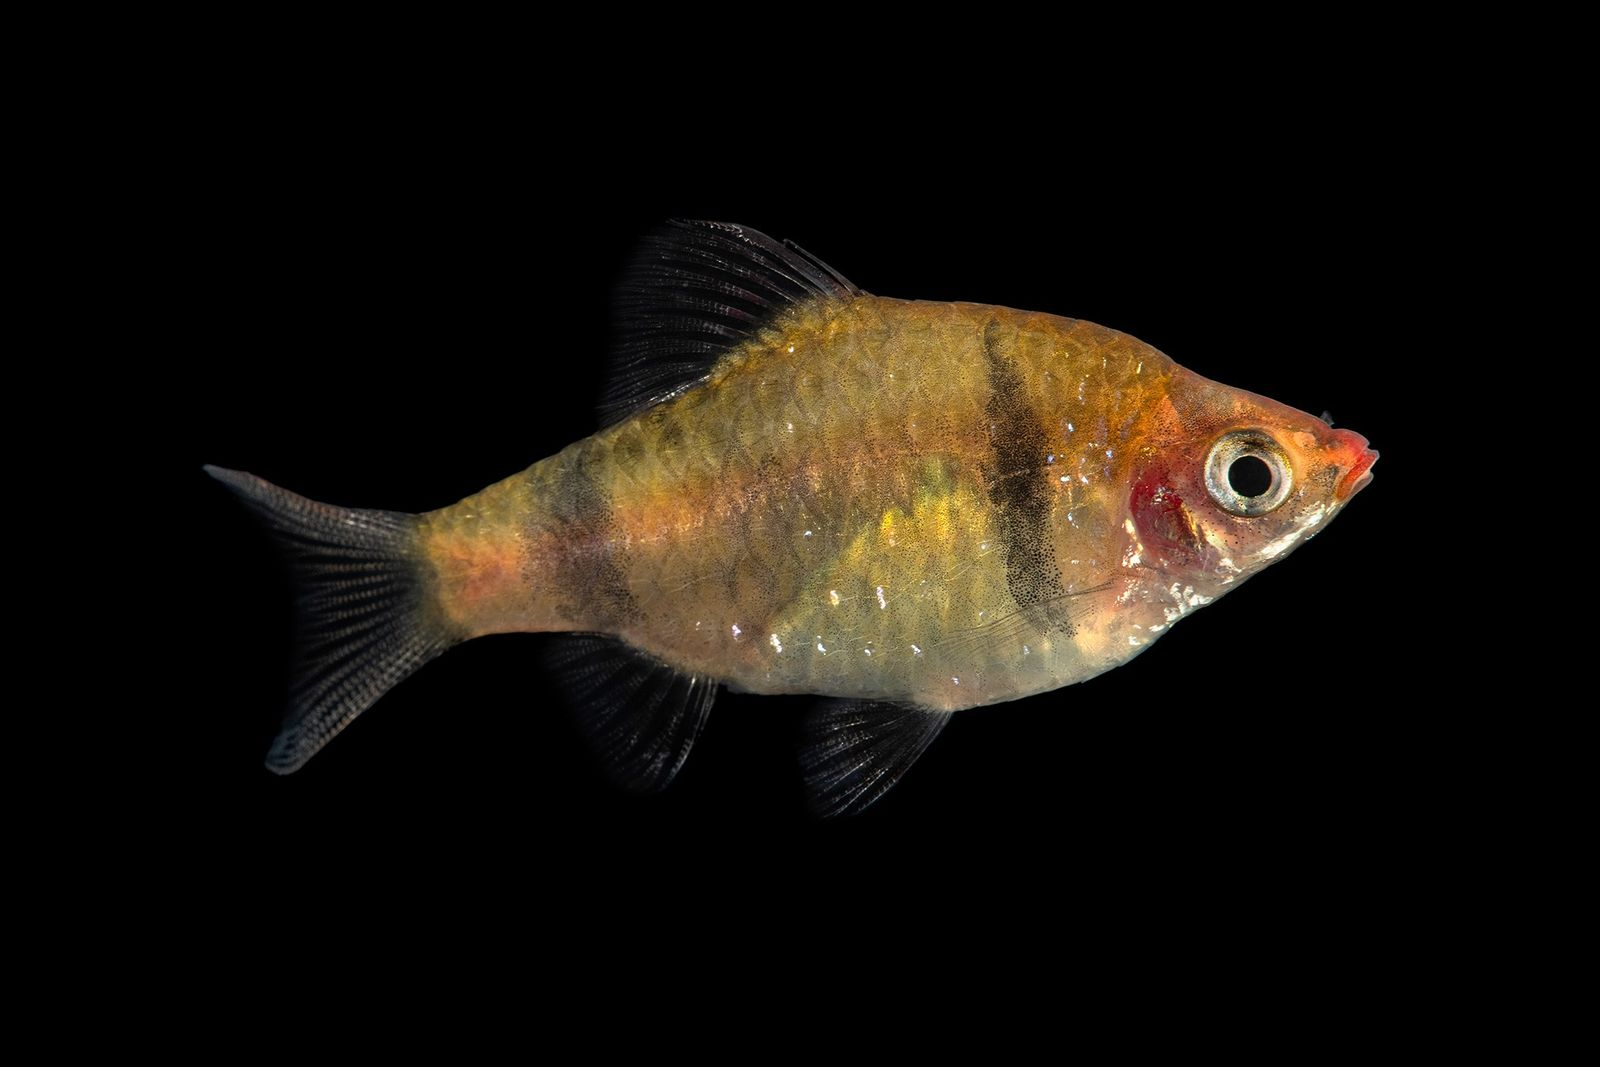 Colourful fish makes a splash as the 9,000th animal in our Photo Ark